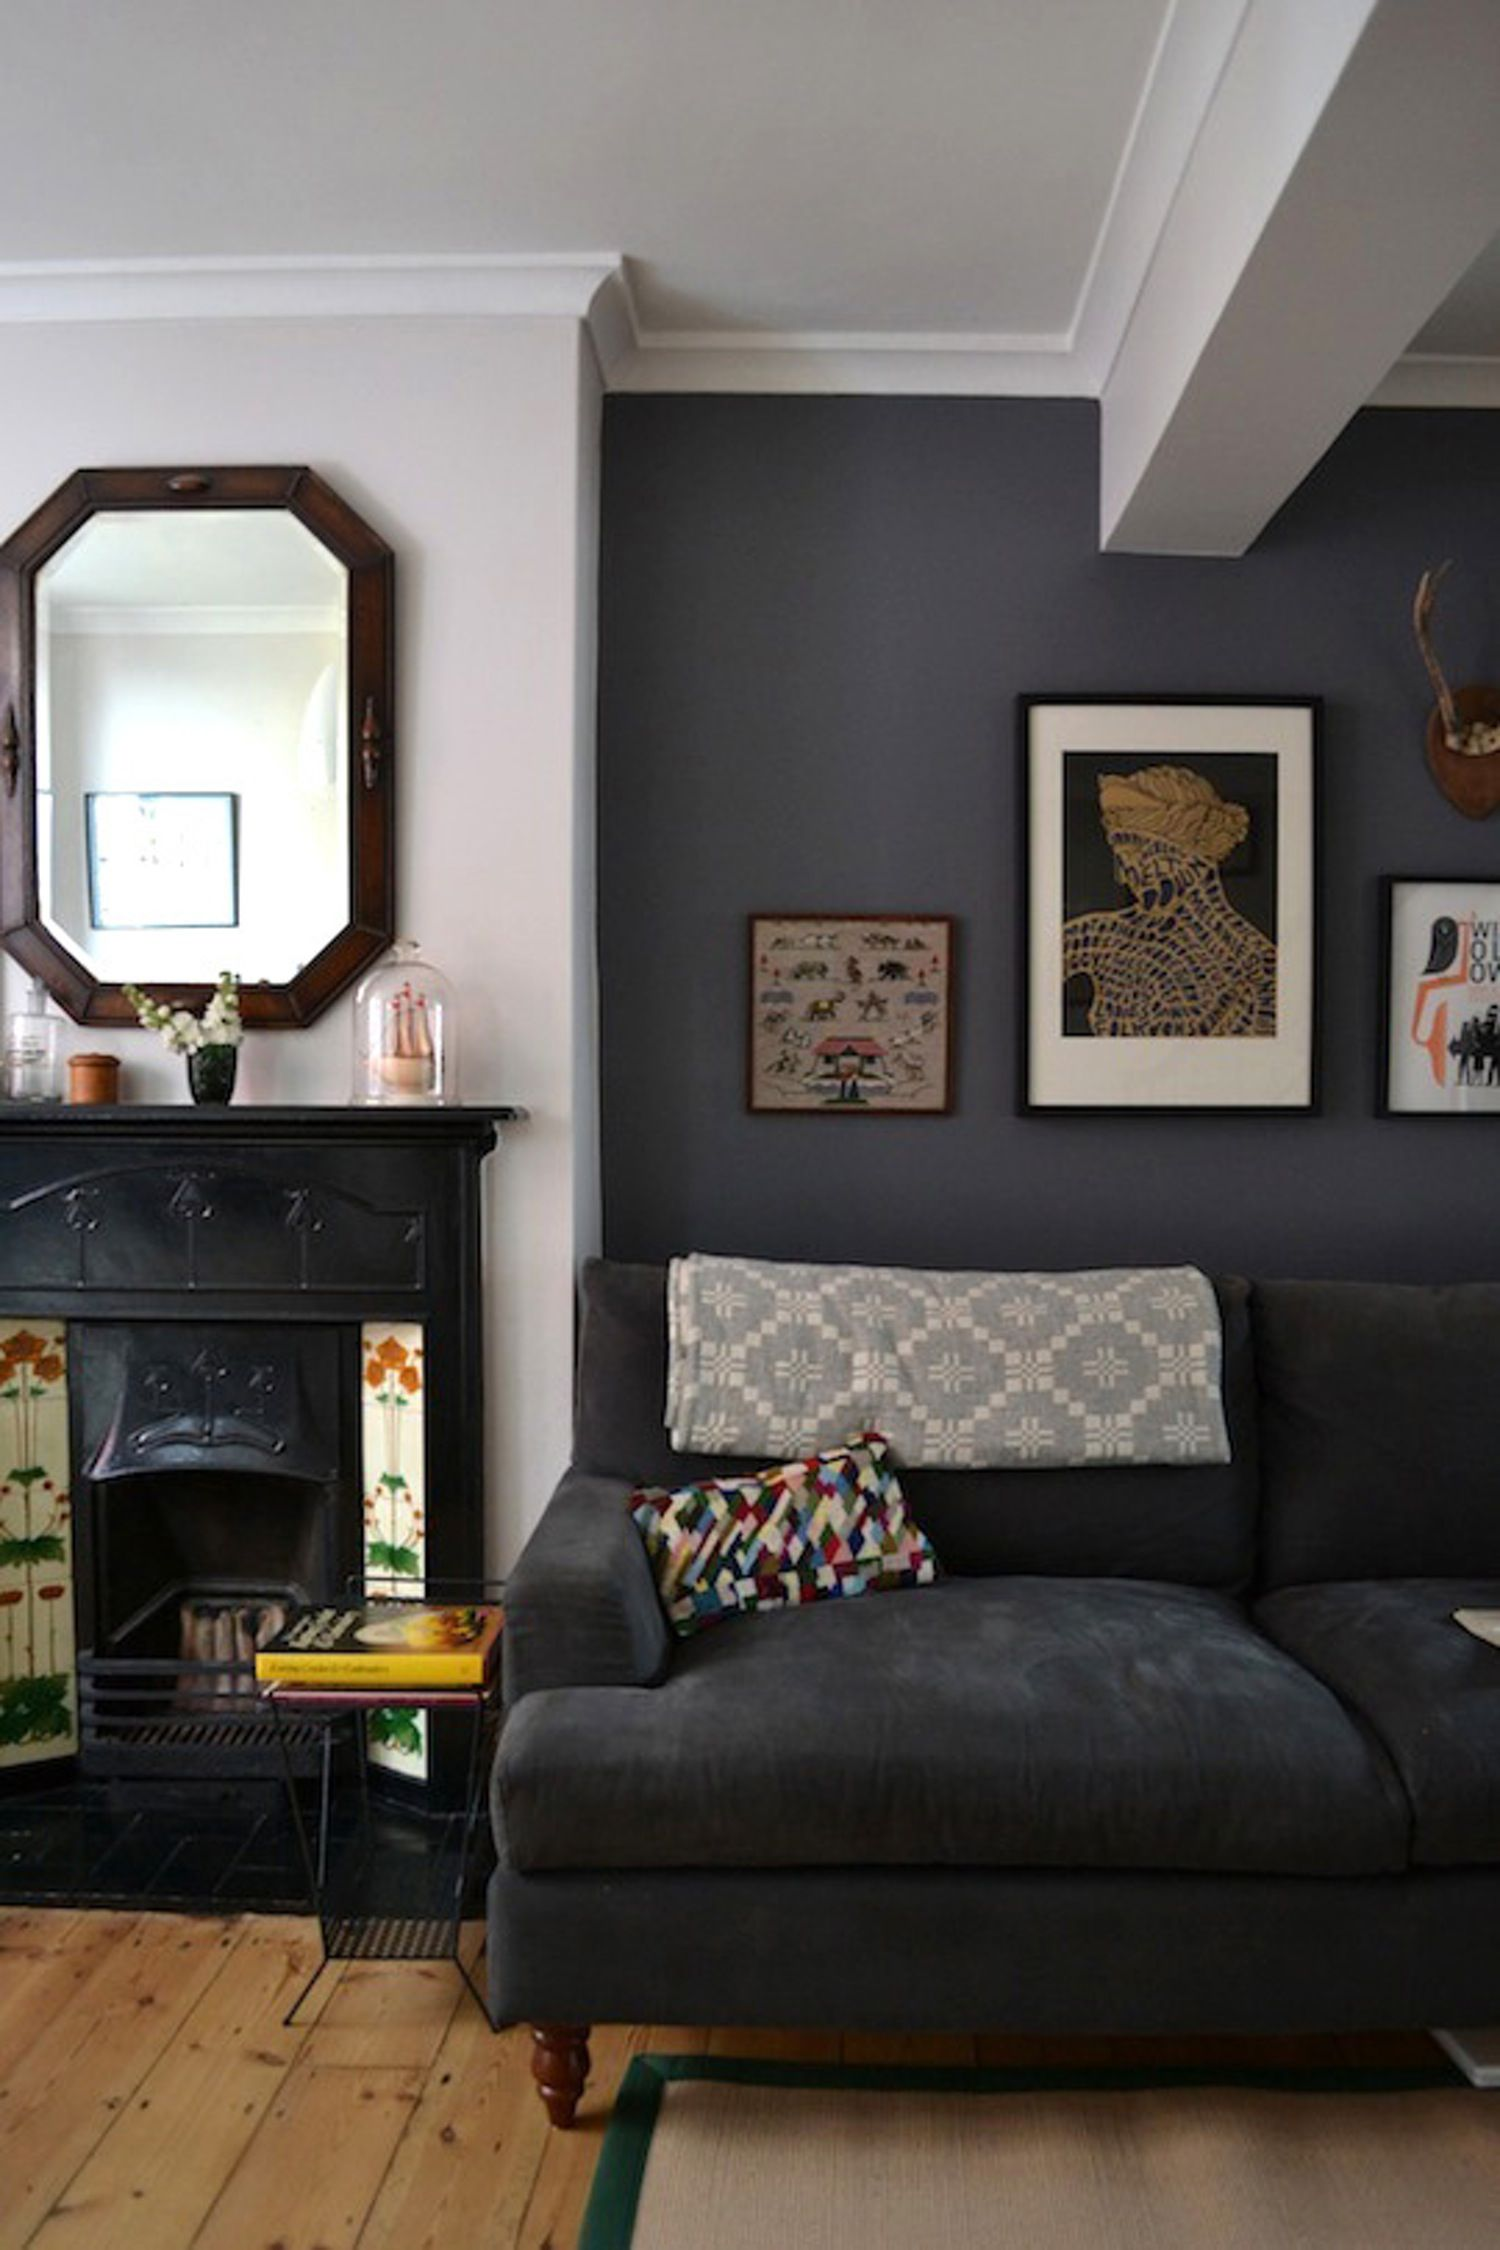 Living room nooks on either side of